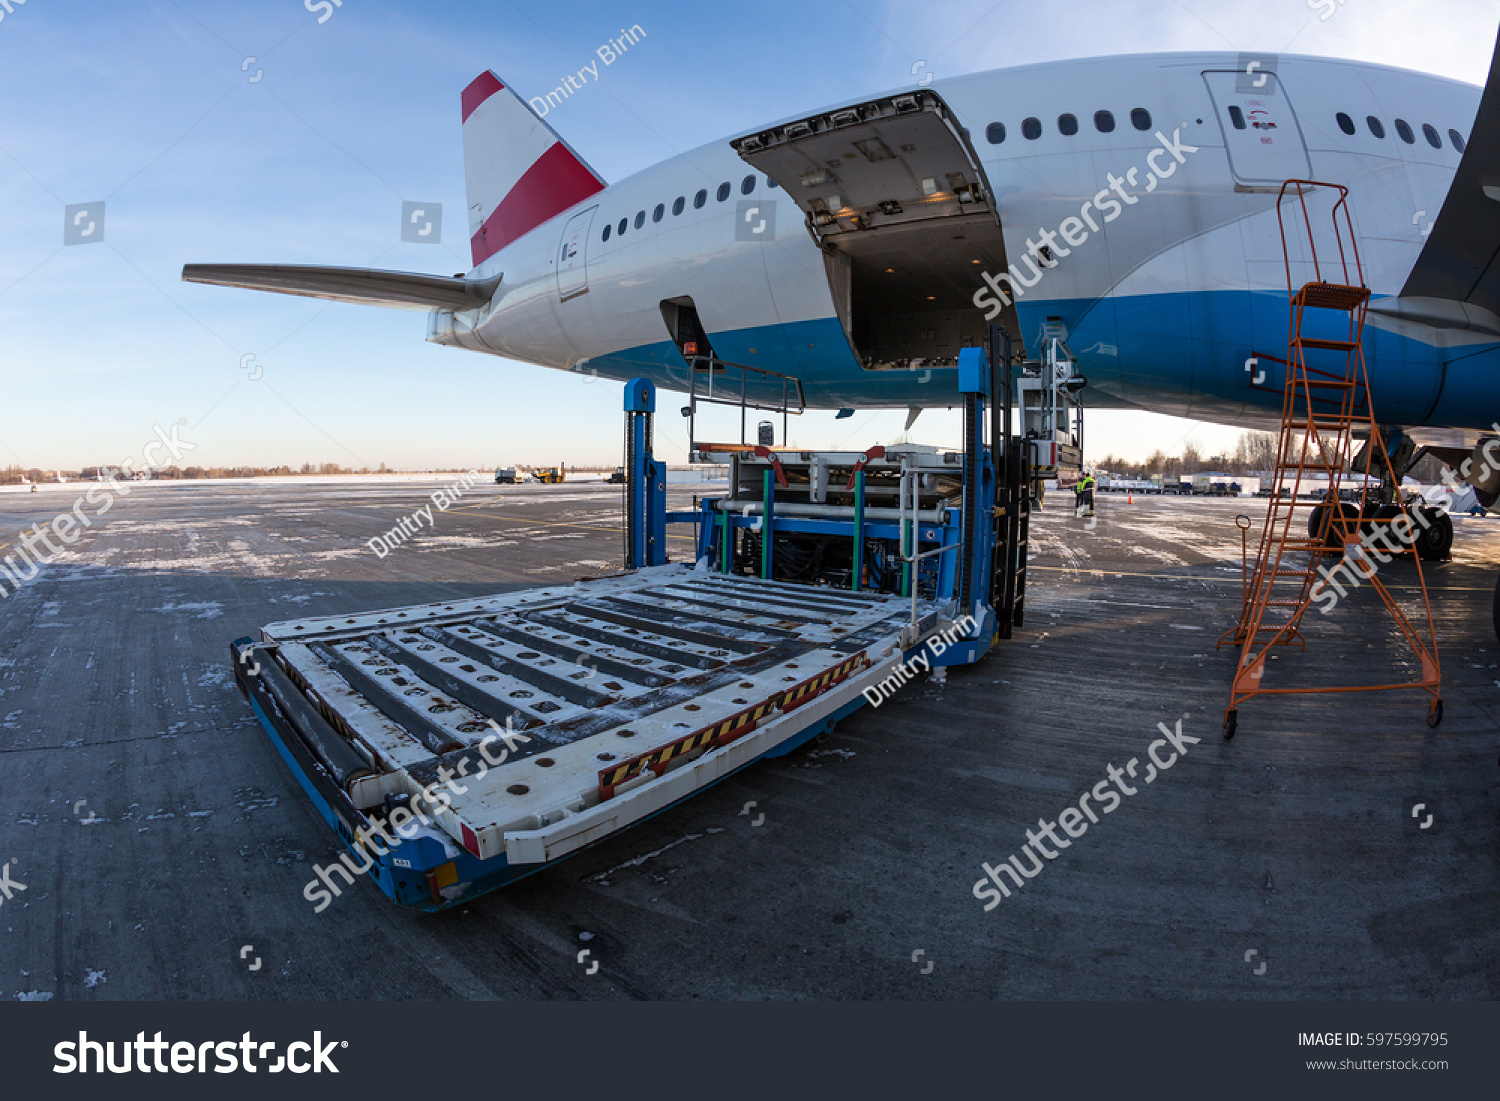 Airport cargo loading vehicle. Ground handling. Boeing 777.